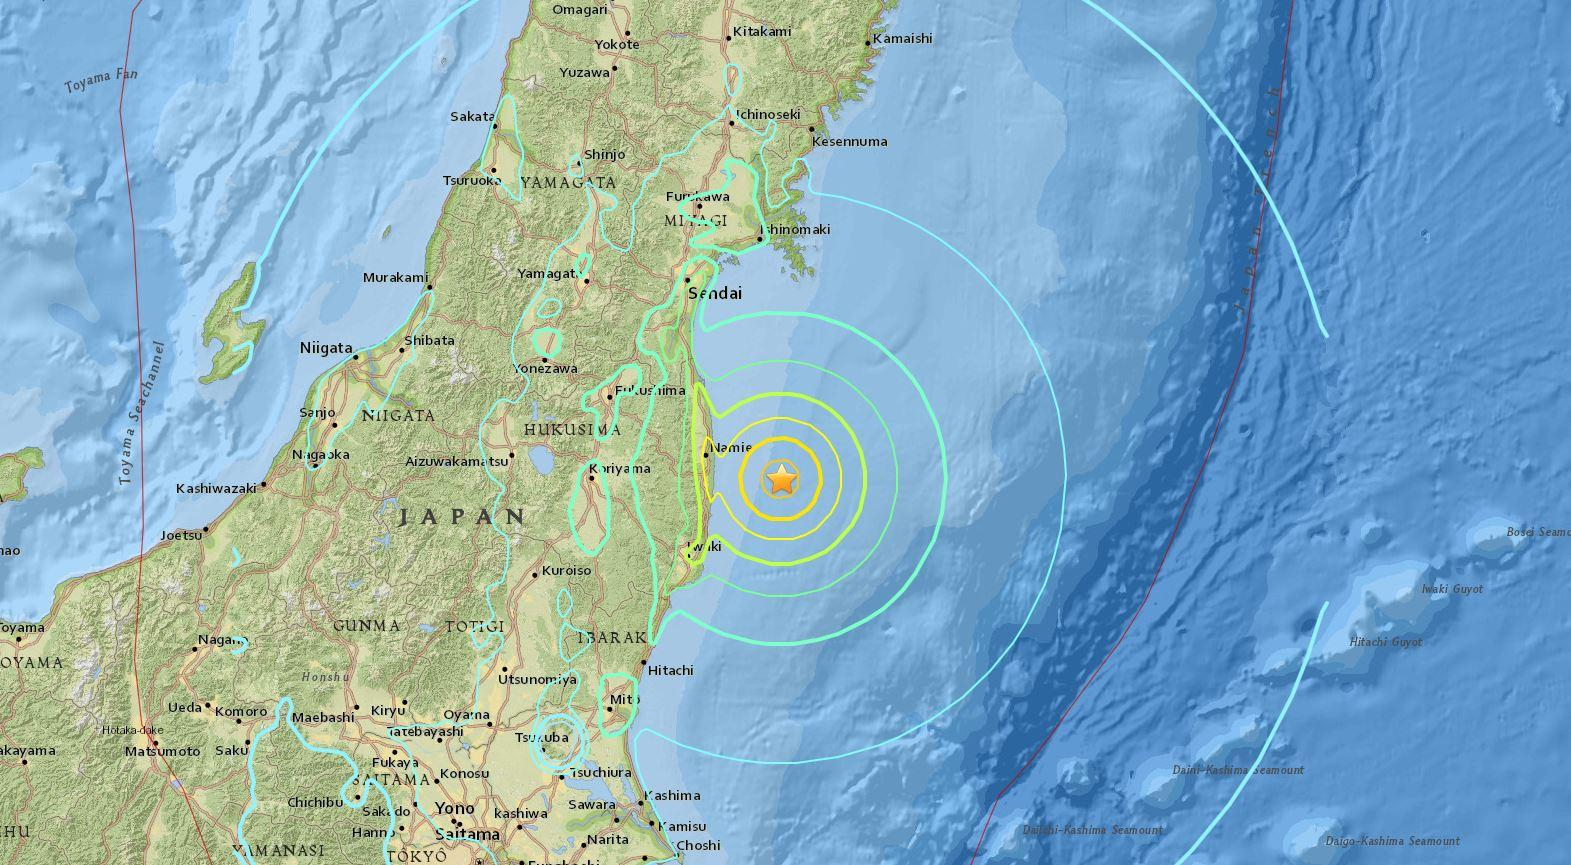 Japan Earthquake Map Today.Tsunami Warning Issued After Massive Earthquake Off Fukushima In